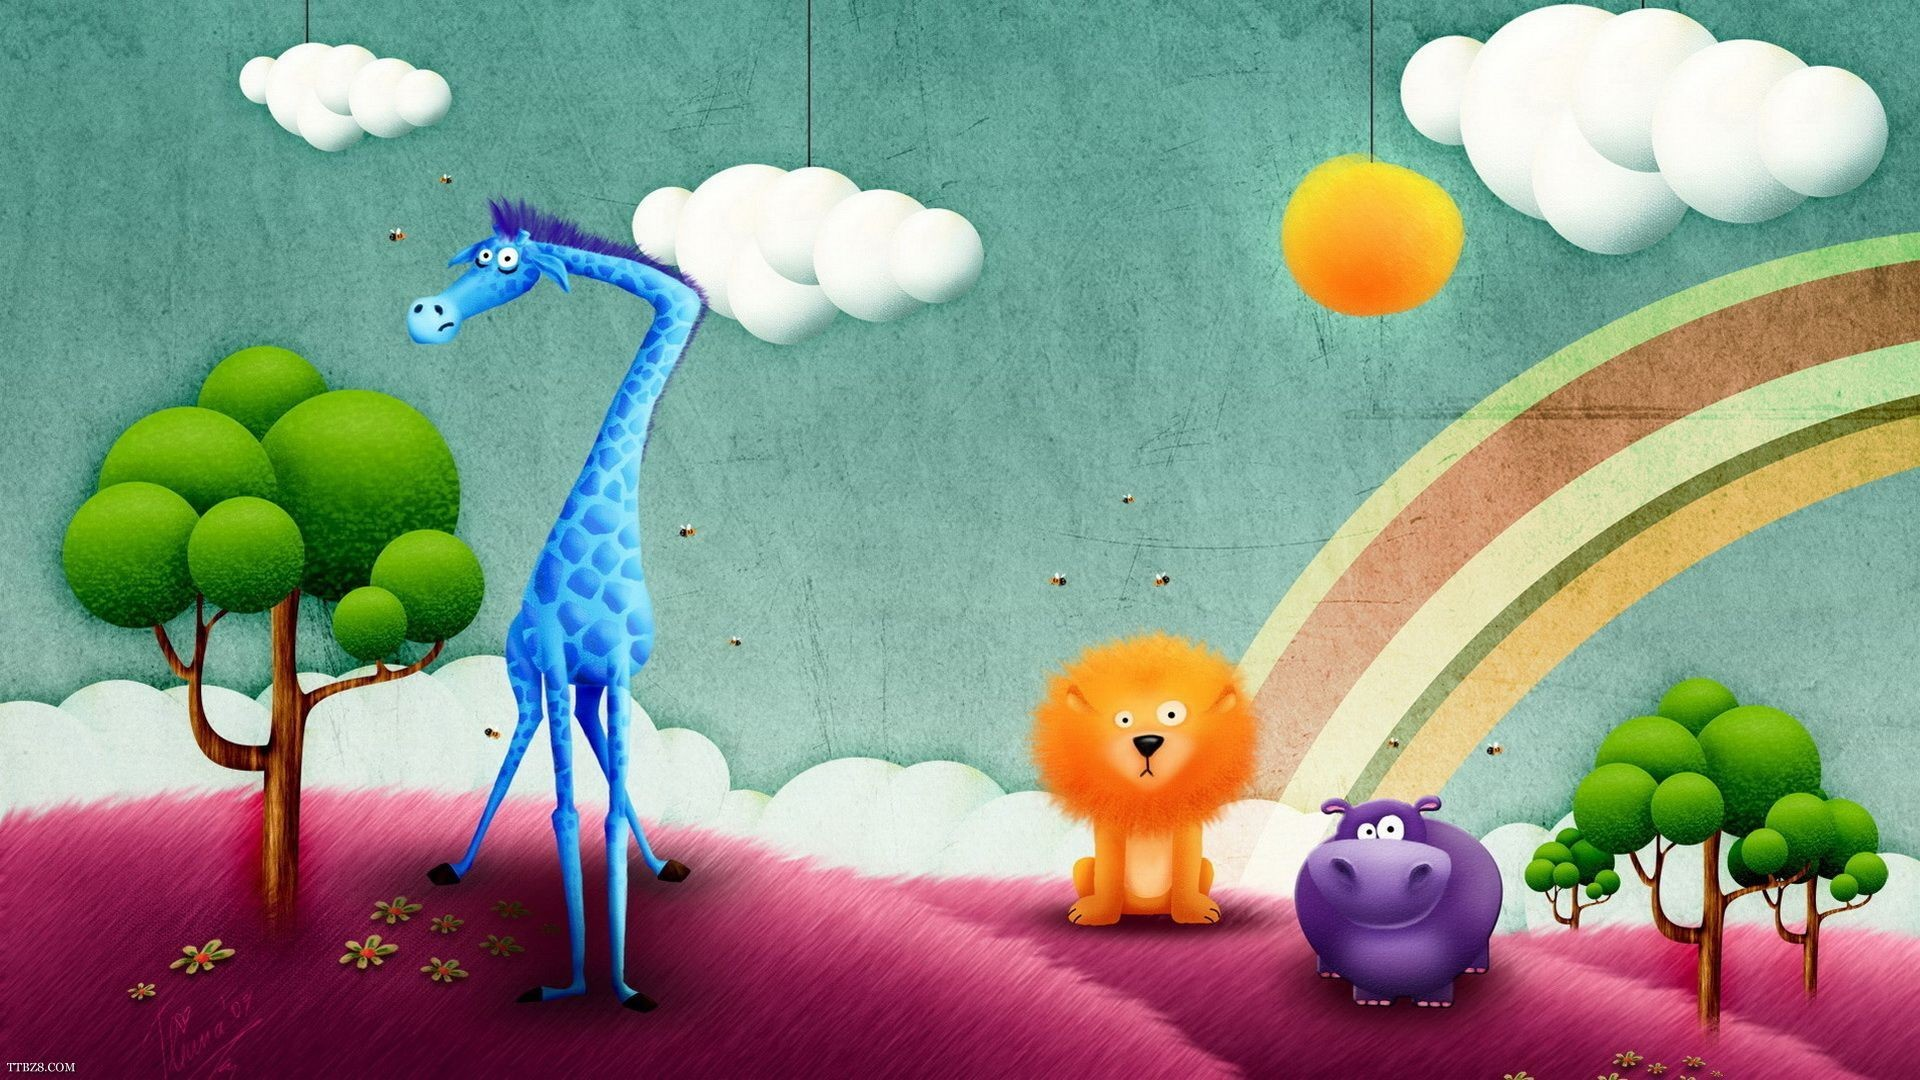 2560x1600 Funny Cartoon Wallpapers Wallpaper For Mobile